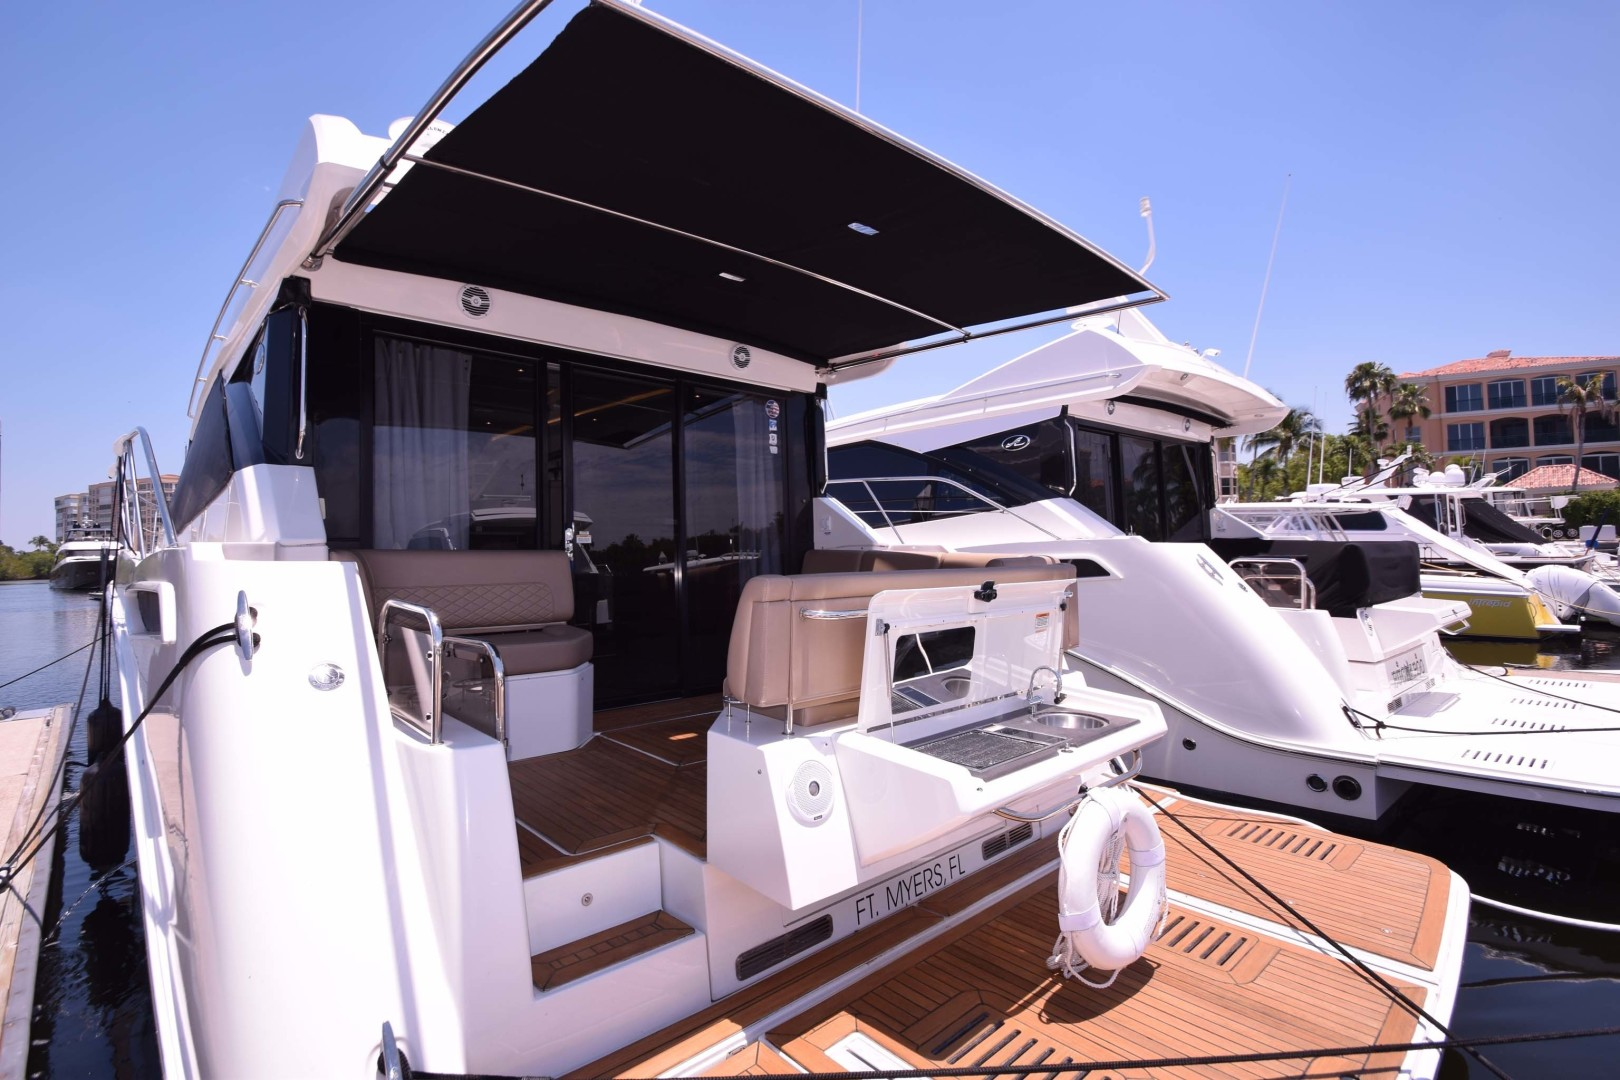 Sea Ray-460 Sundancer 2017-Susanne Marie 4 Fort Myers-Florida-United States-Aft Seating With Sunshade-1403765 | Thumbnail